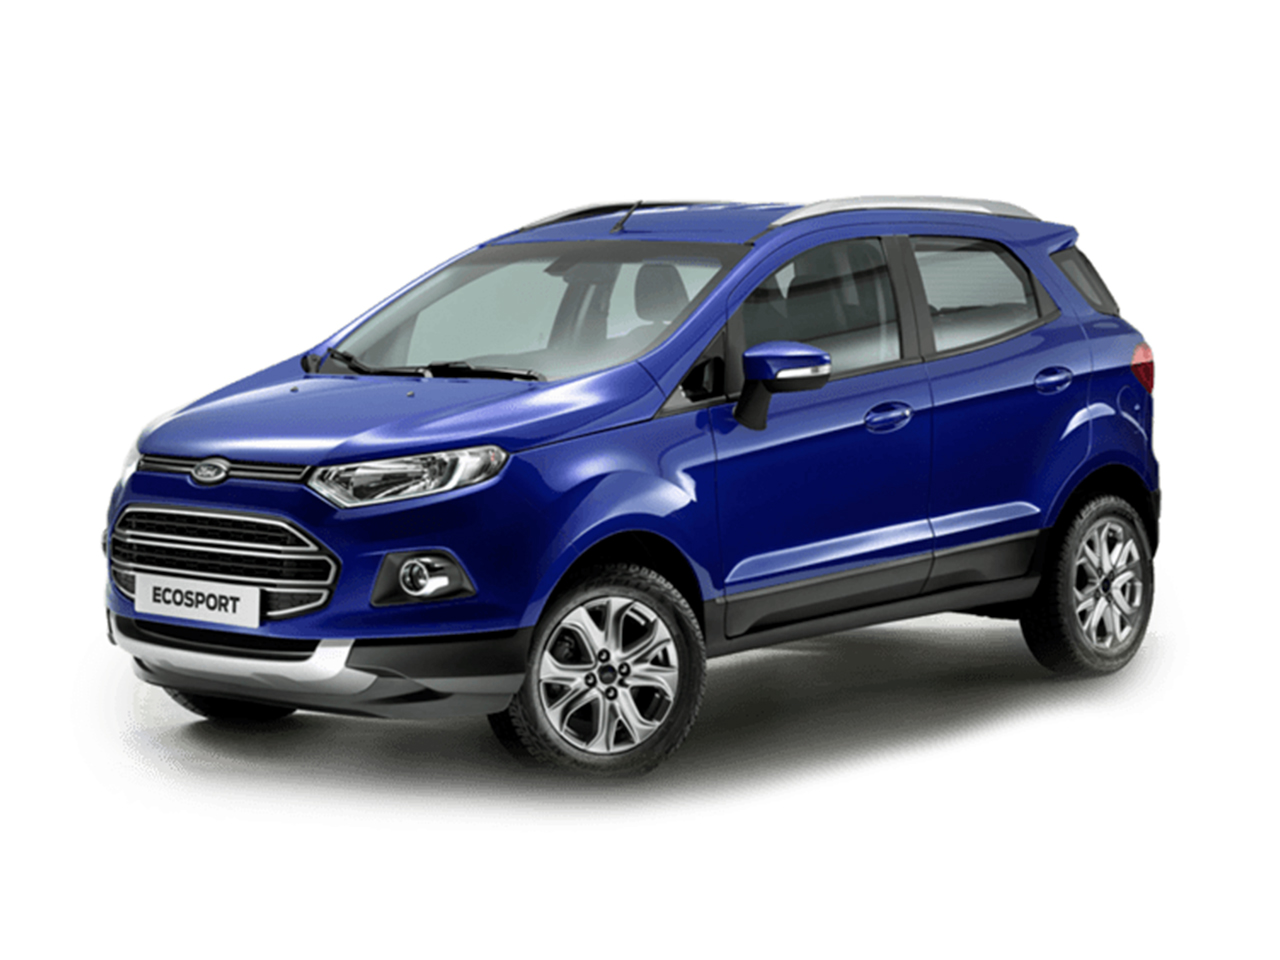 Image Result For Ford Ecosport Uae